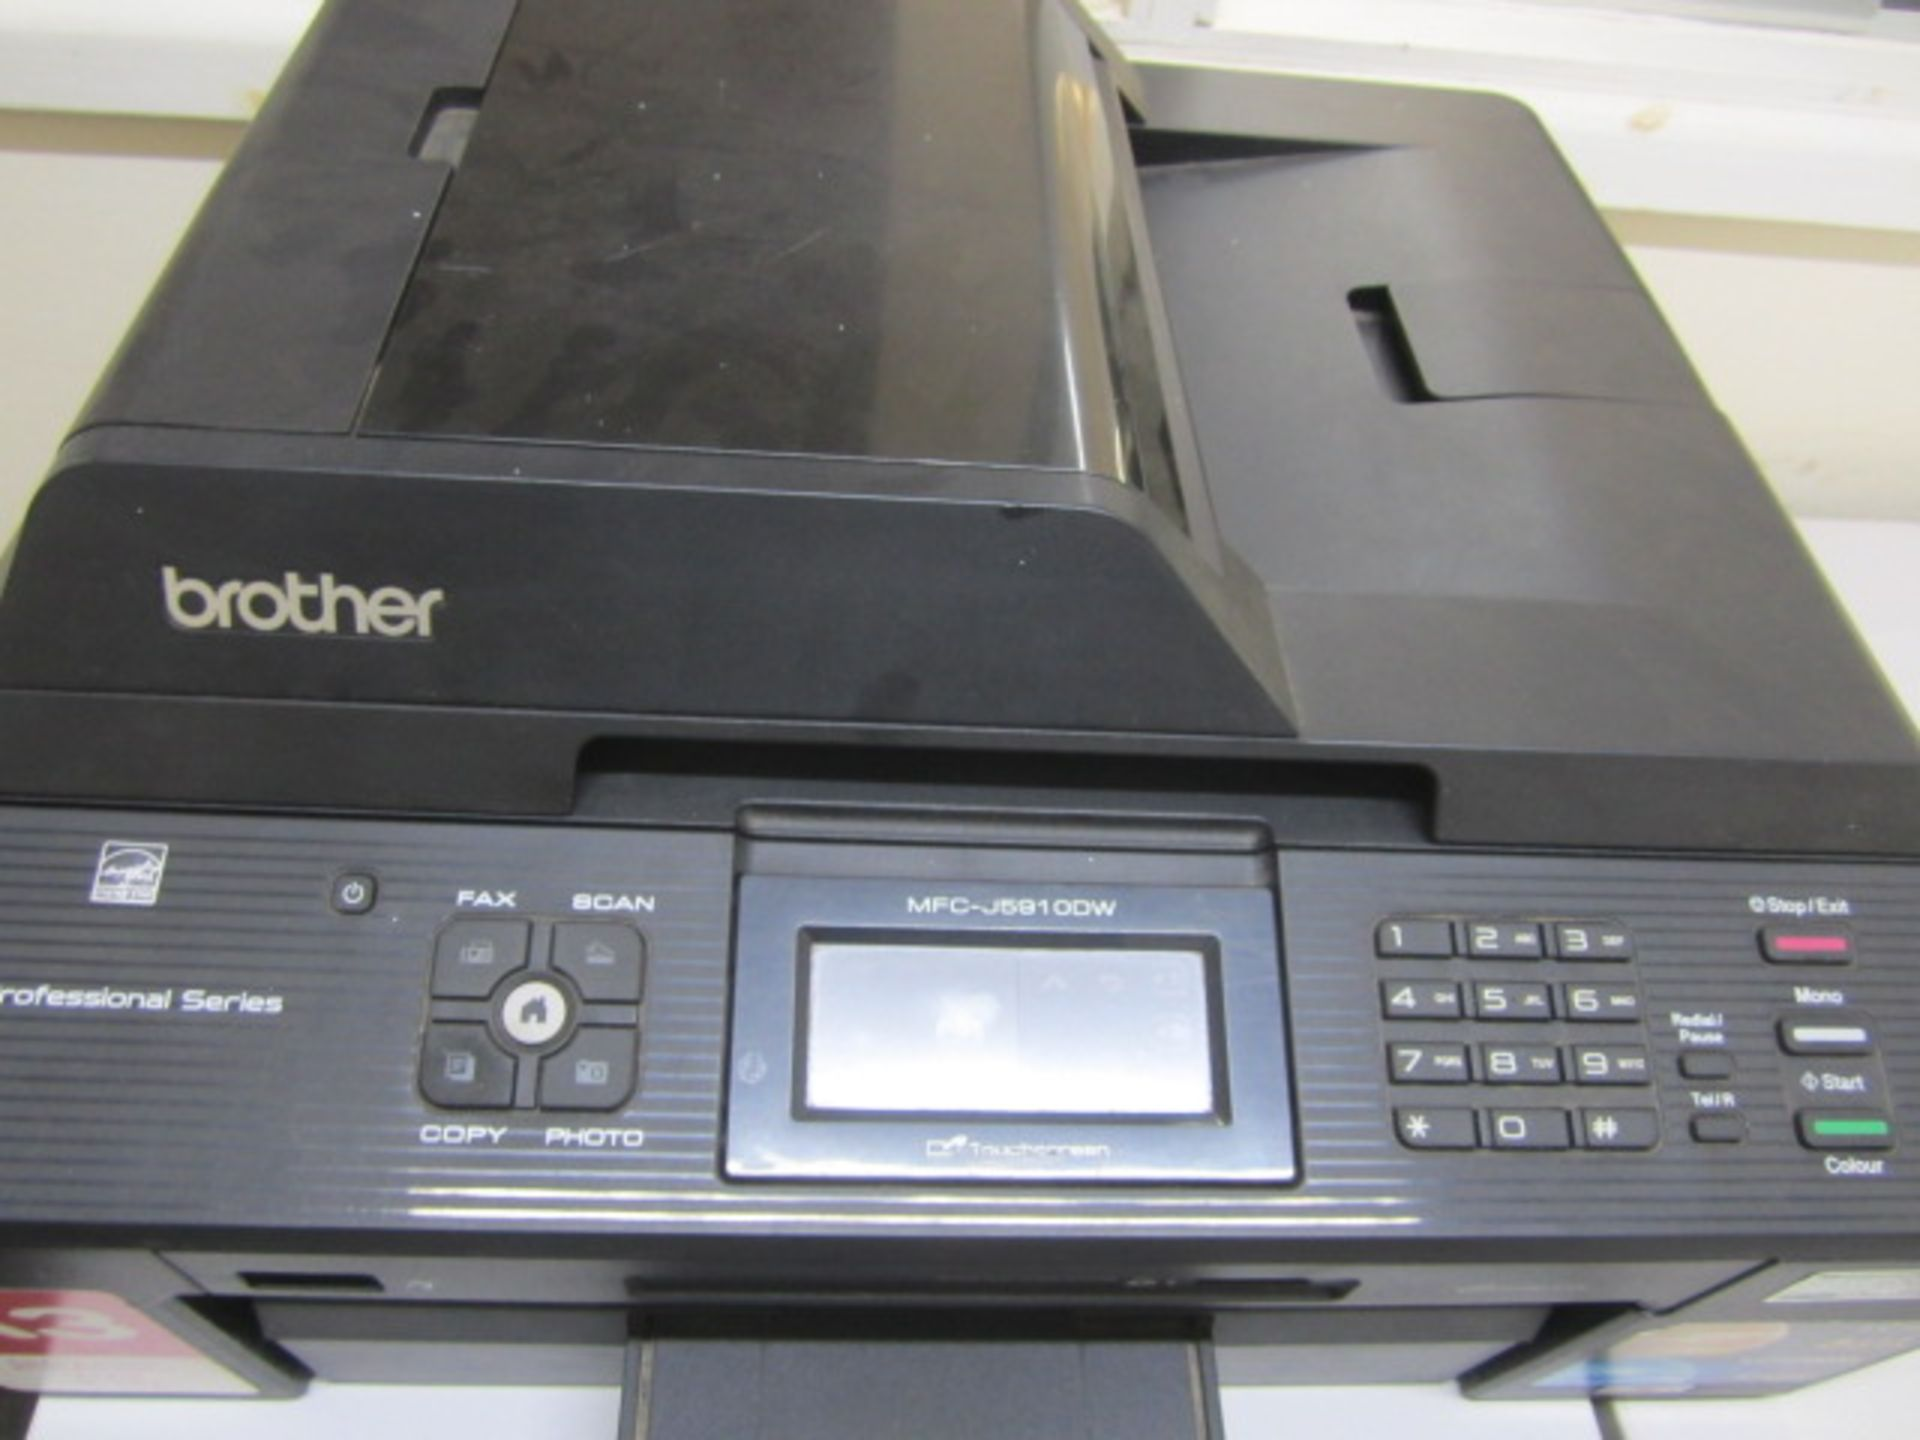 Brother MFC-J5910 DW fax, scan, copy and copier - Image 2 of 2